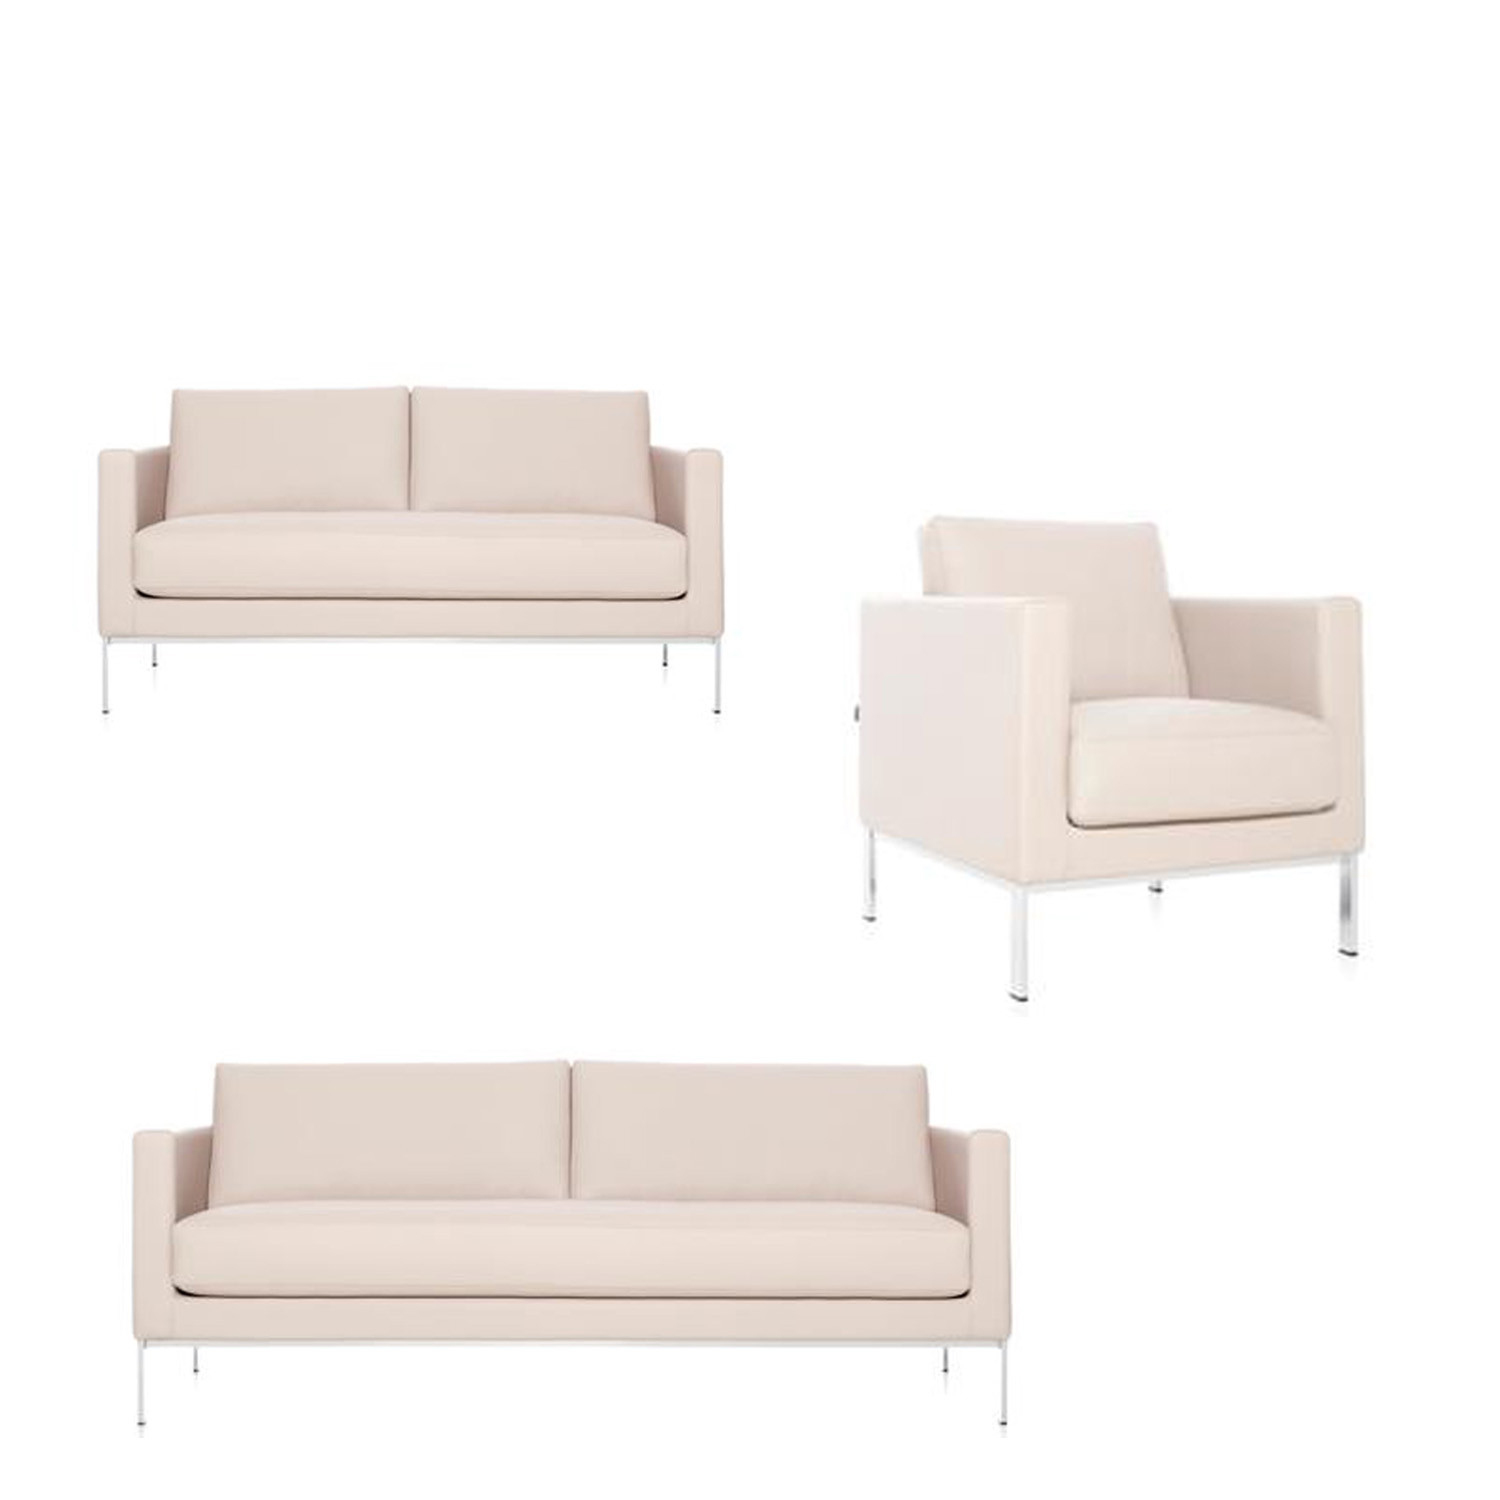 Avenue Sofa and Armchair